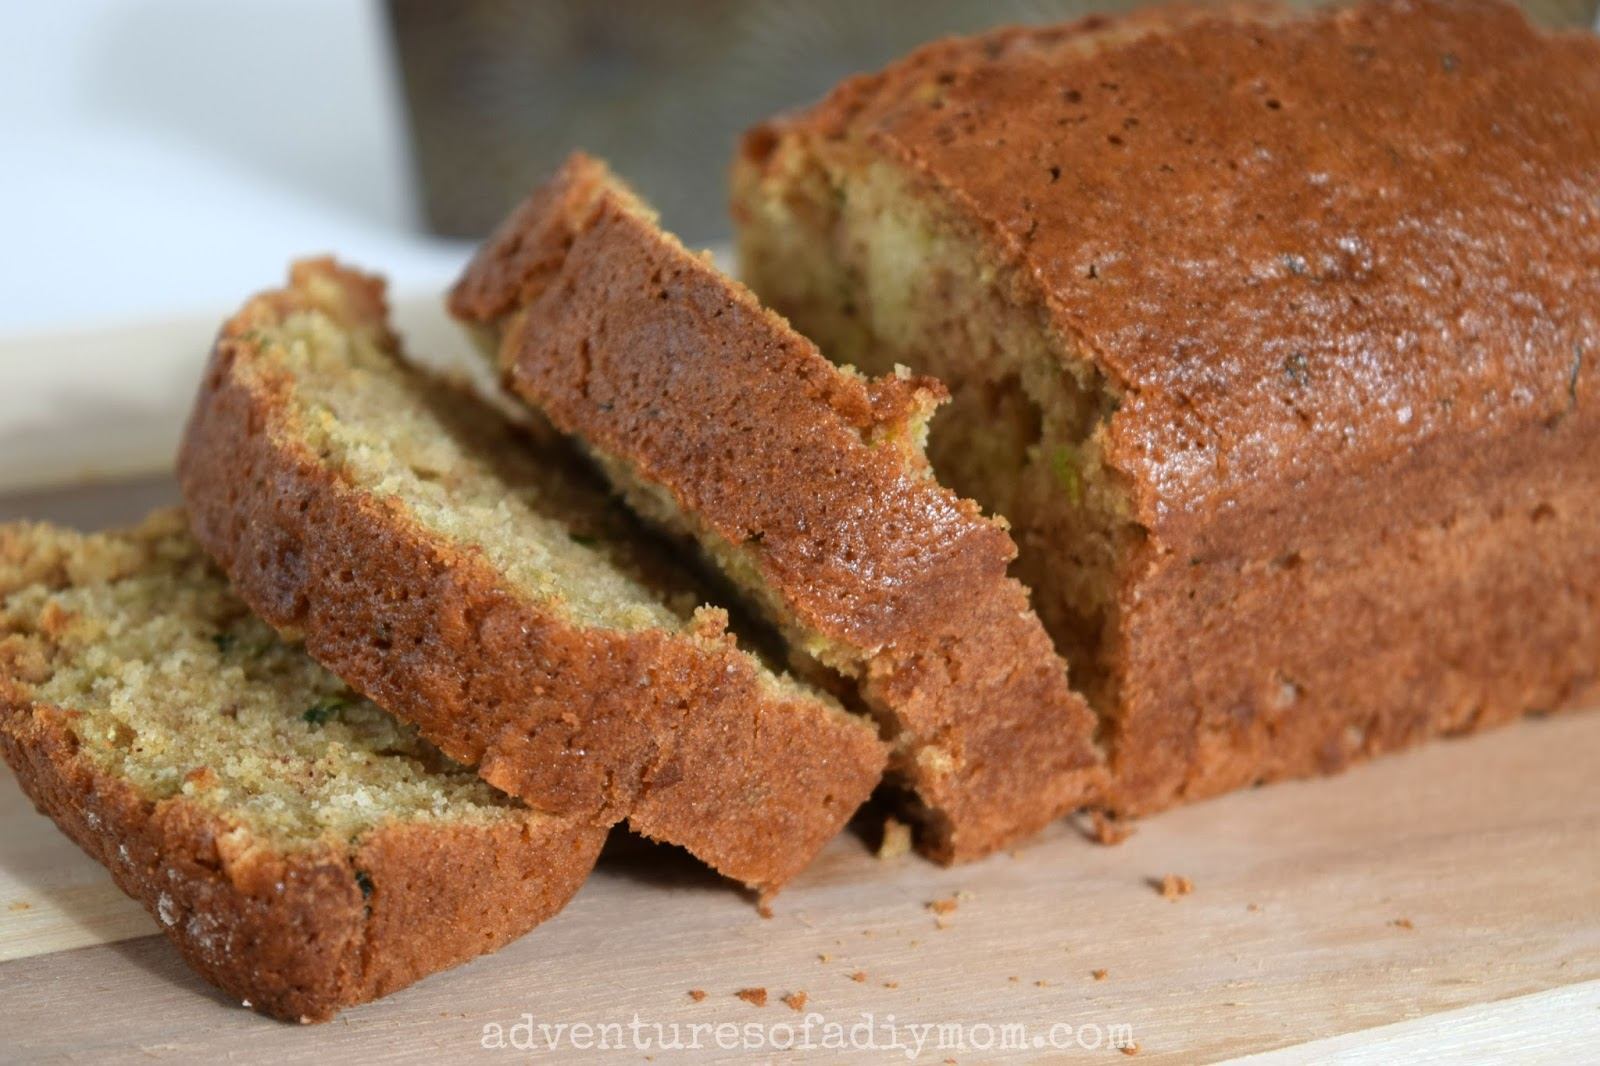 Zucchini Bread Recipe - Adventures of a DIY Mom